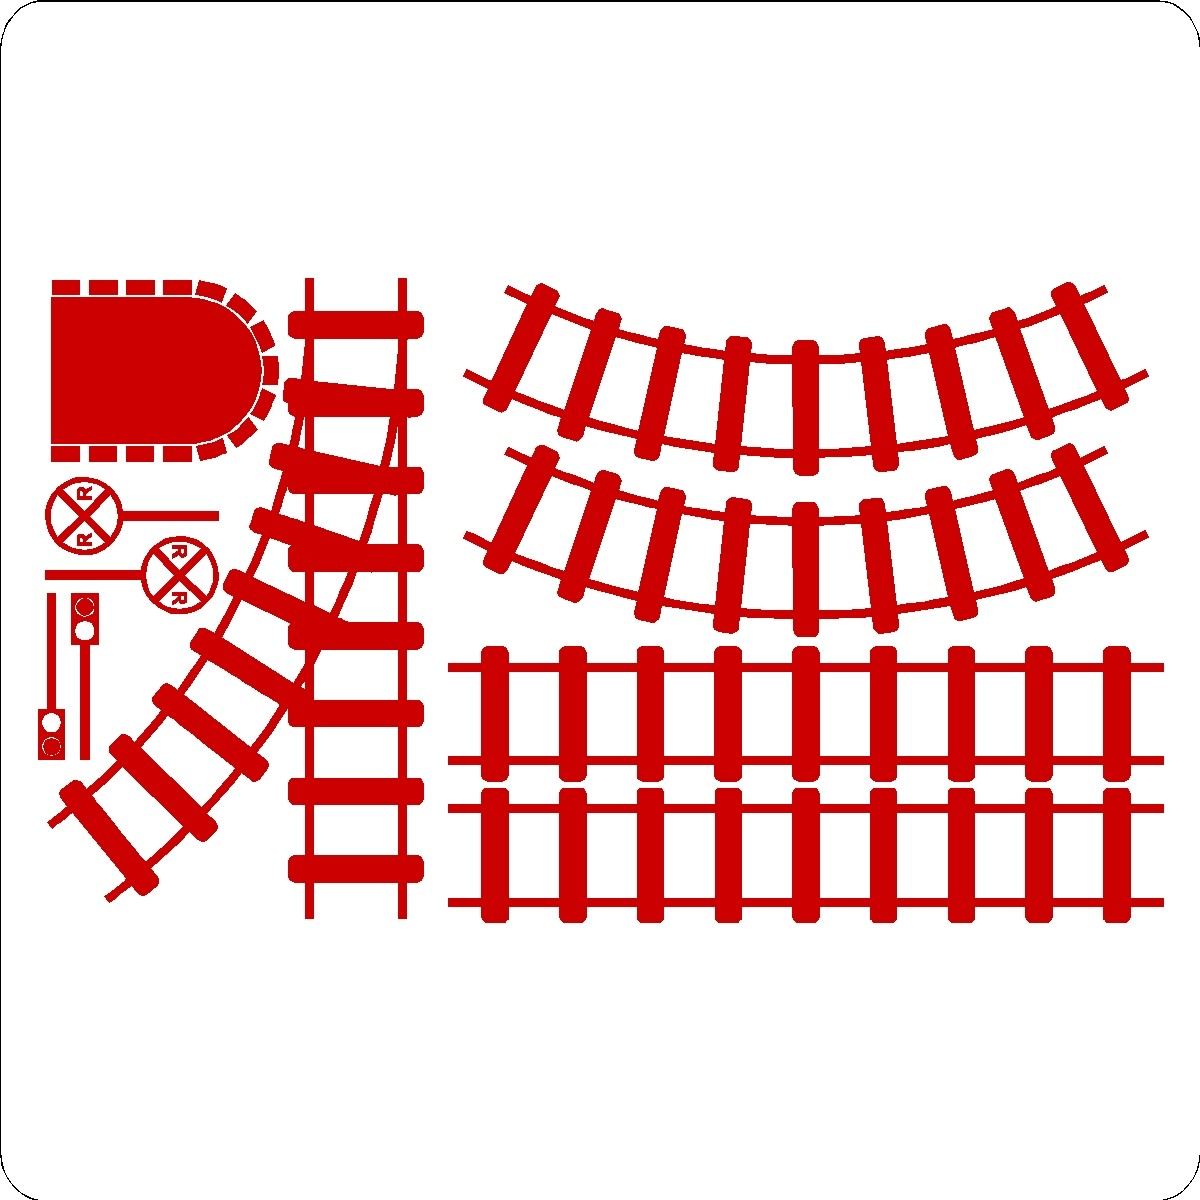 hight resolution of train tracks clipart curved